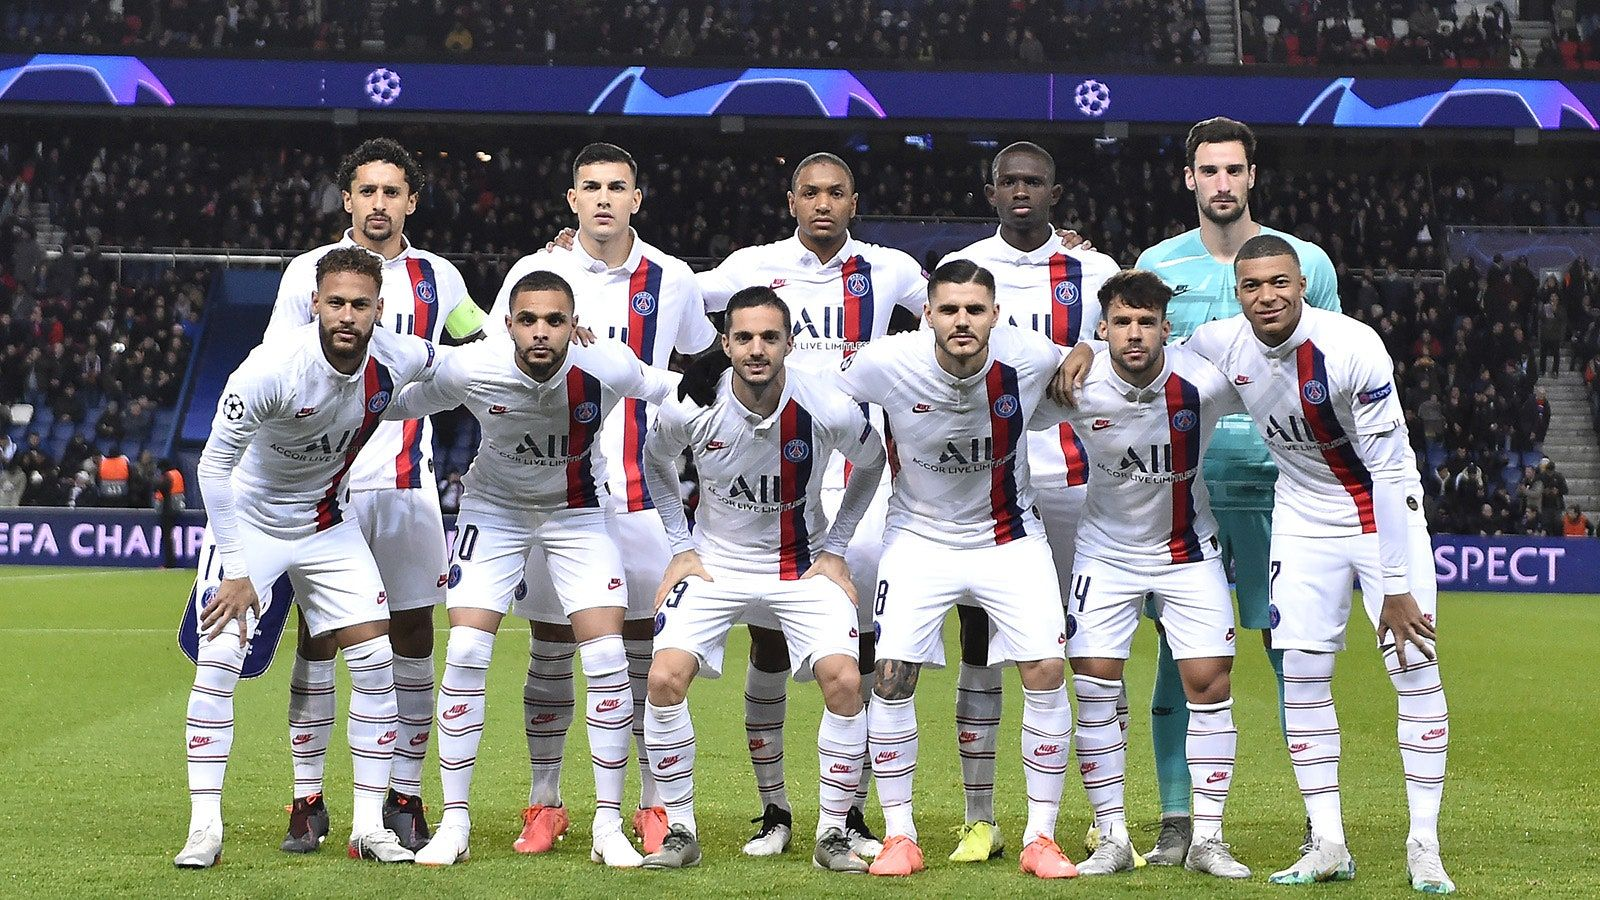 PSG advances to the France Cup semifinals after defeating